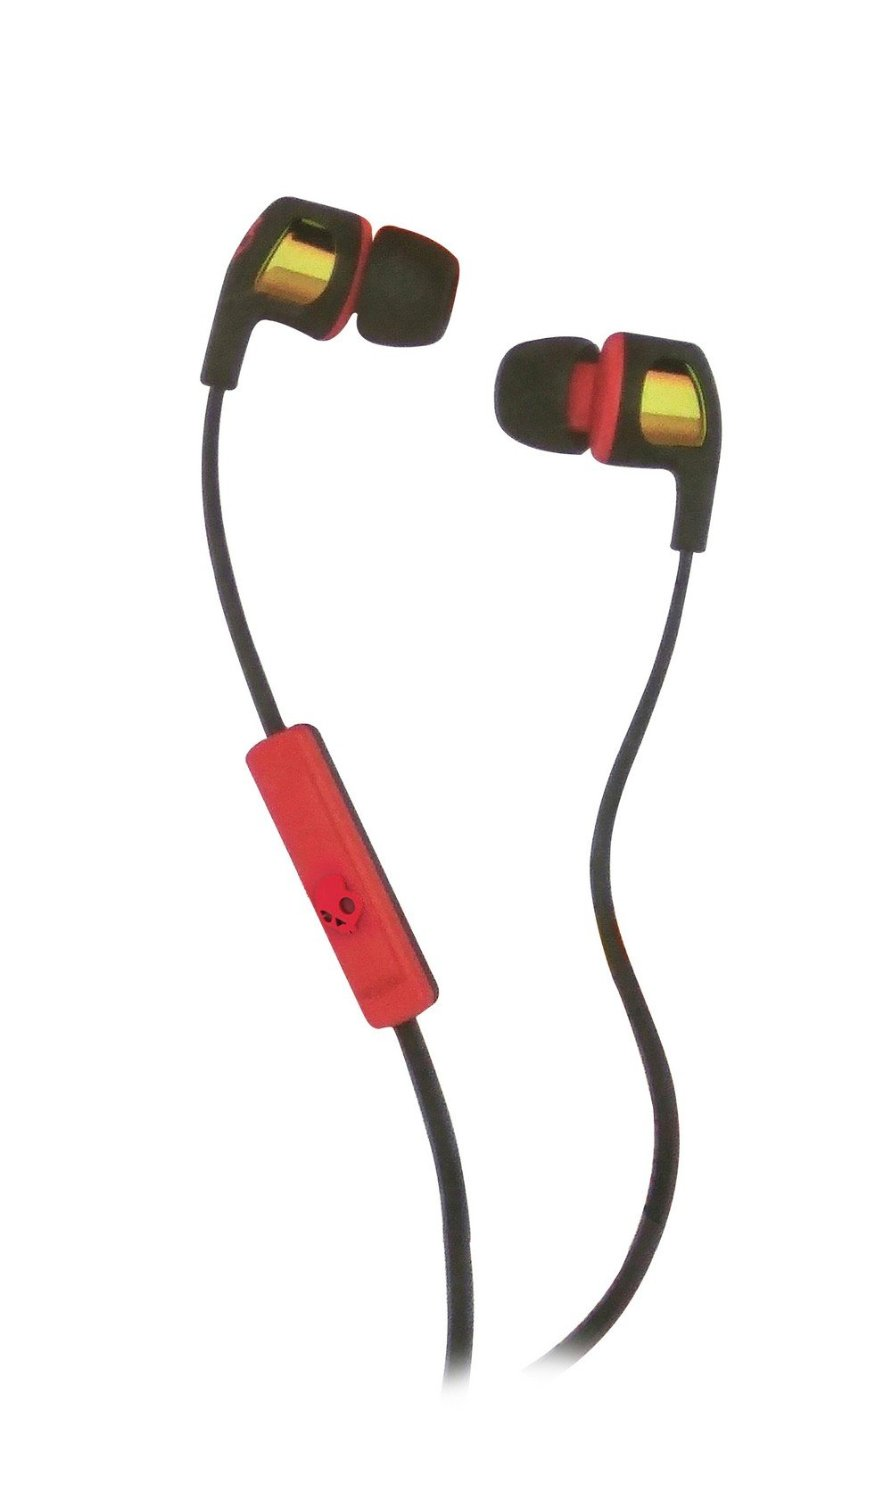 hight resolution of get quotations skullcandy smokin buds 2 noise isolating earbuds with in line microphone and remote